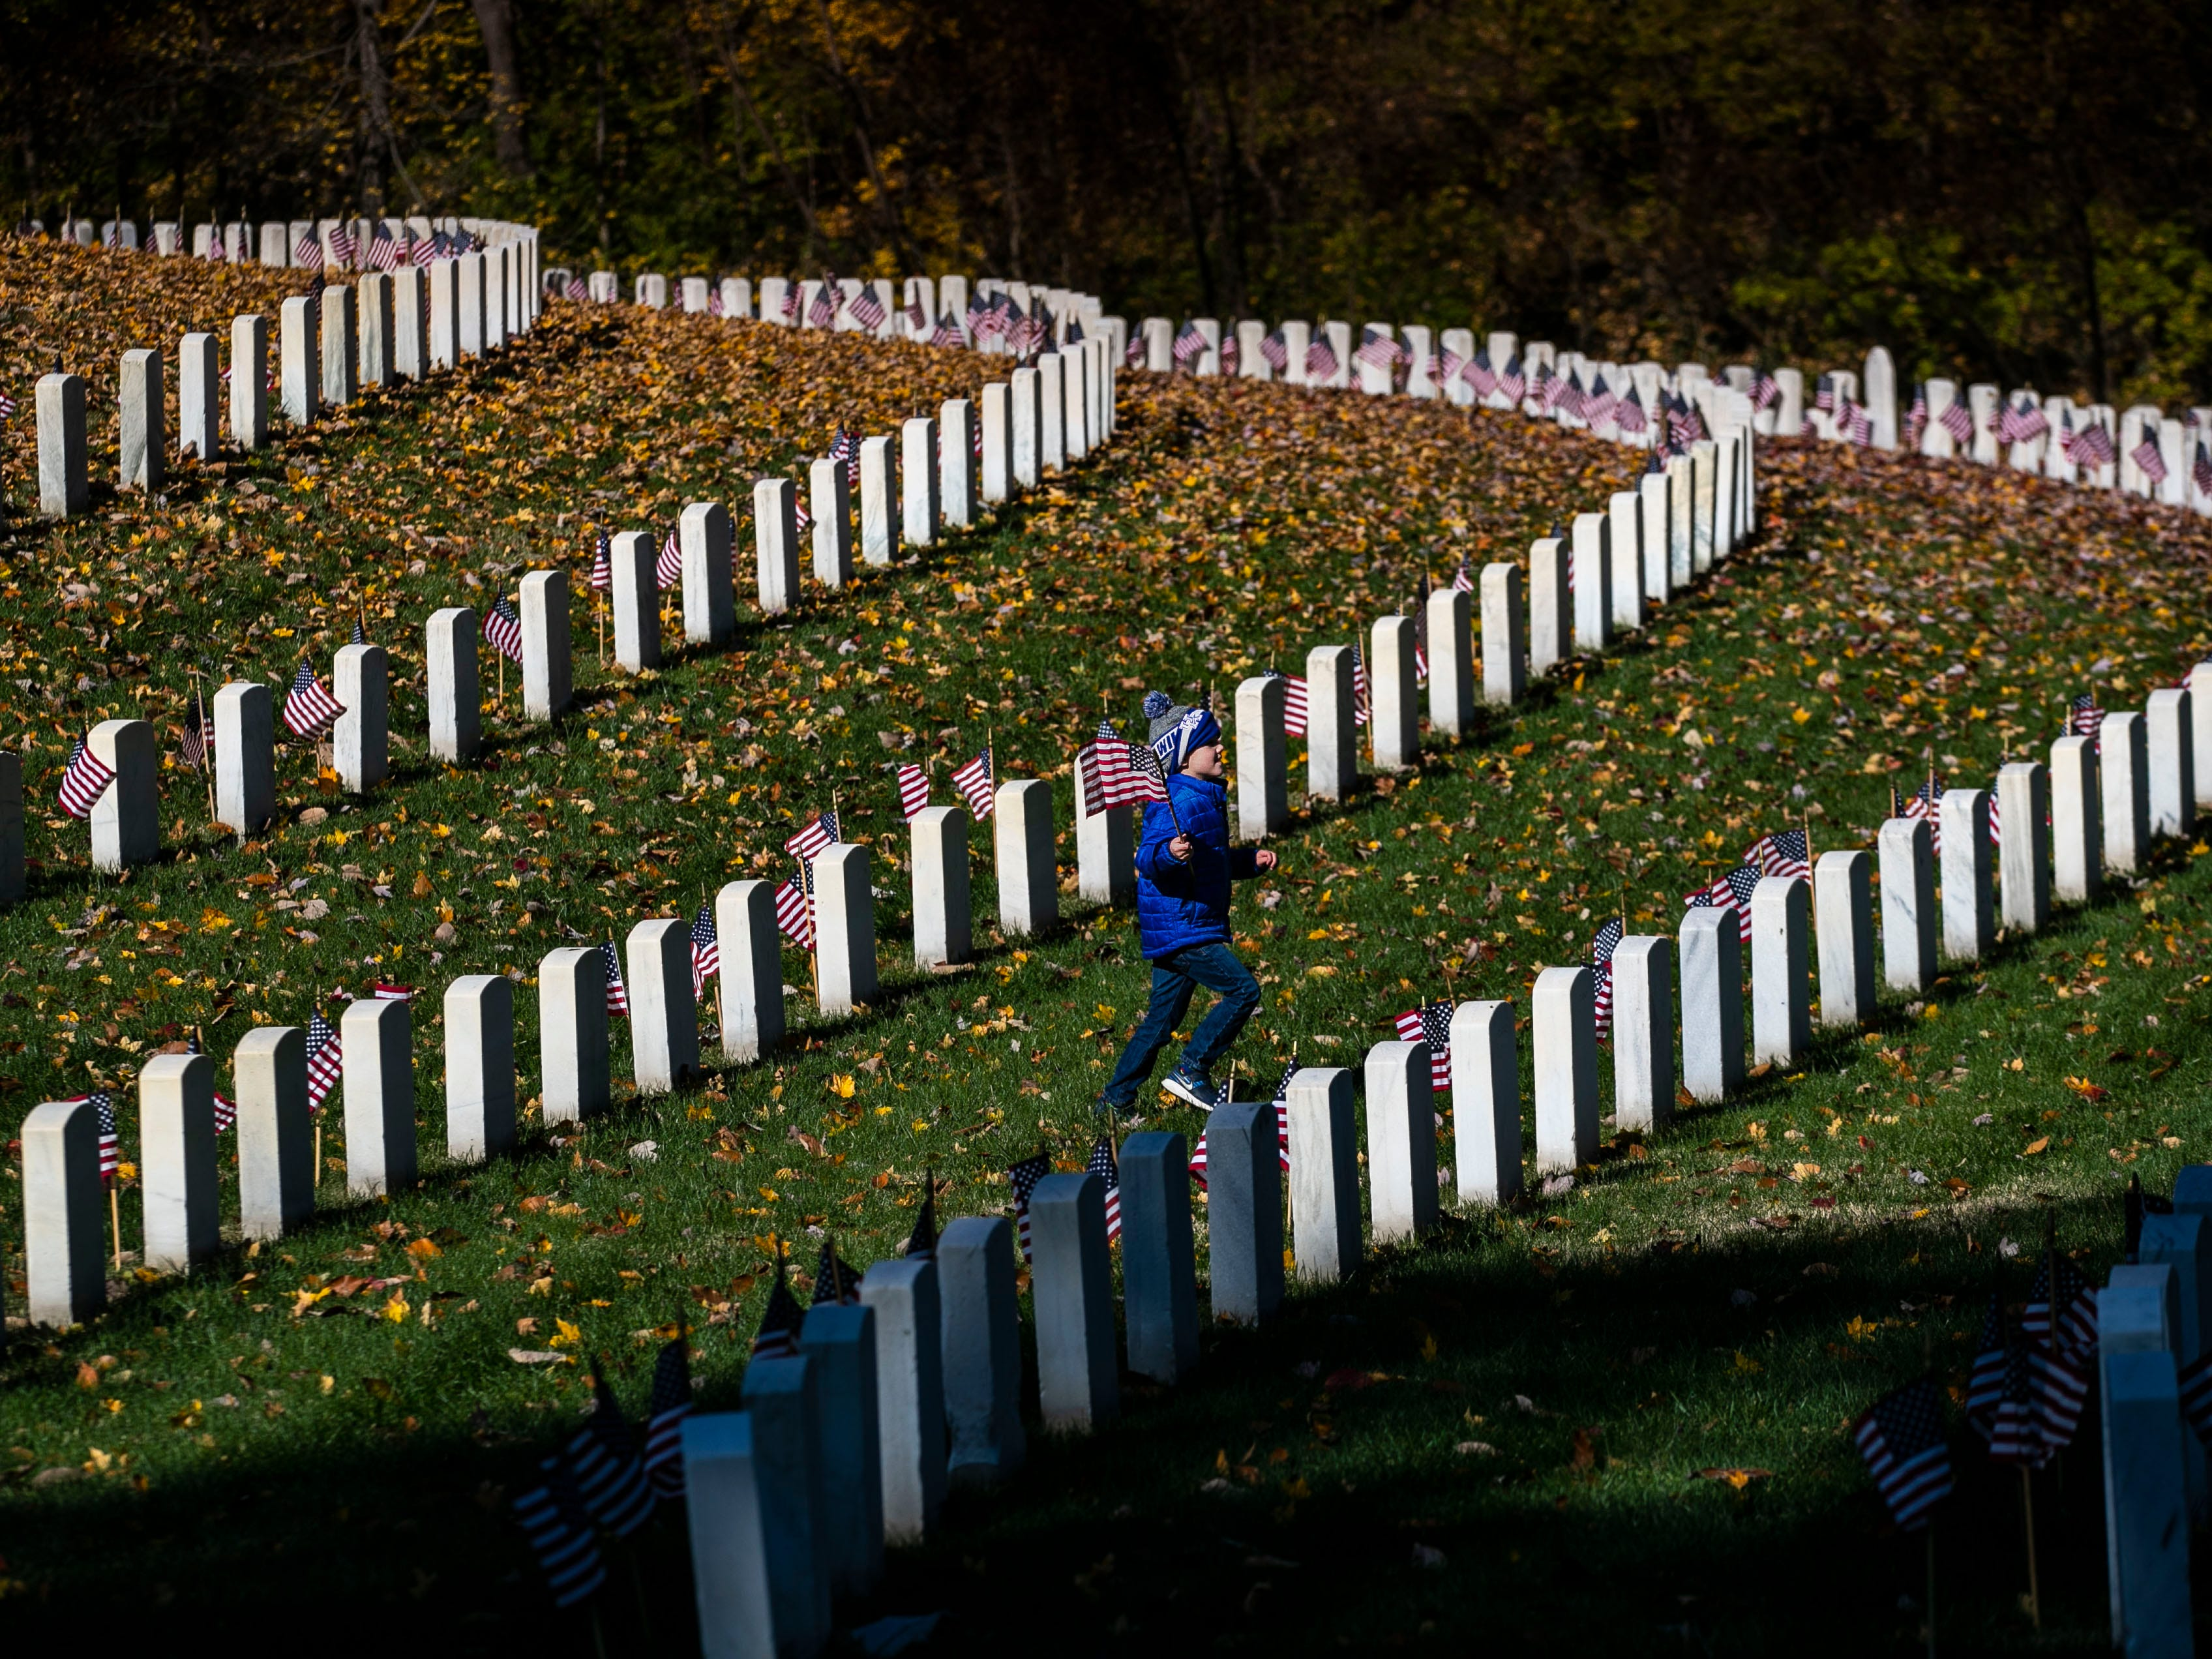 A boy carrying a small American flag runs to catch up to friends during a Flags 4 Vets event at Cave Hill Cemetery Saturday, Nov. 10, 2018. Veterans Day is Sunday, Nov. 11. Around 250 volunteers placed nearly 7,500 flags on military veteran gravesites.